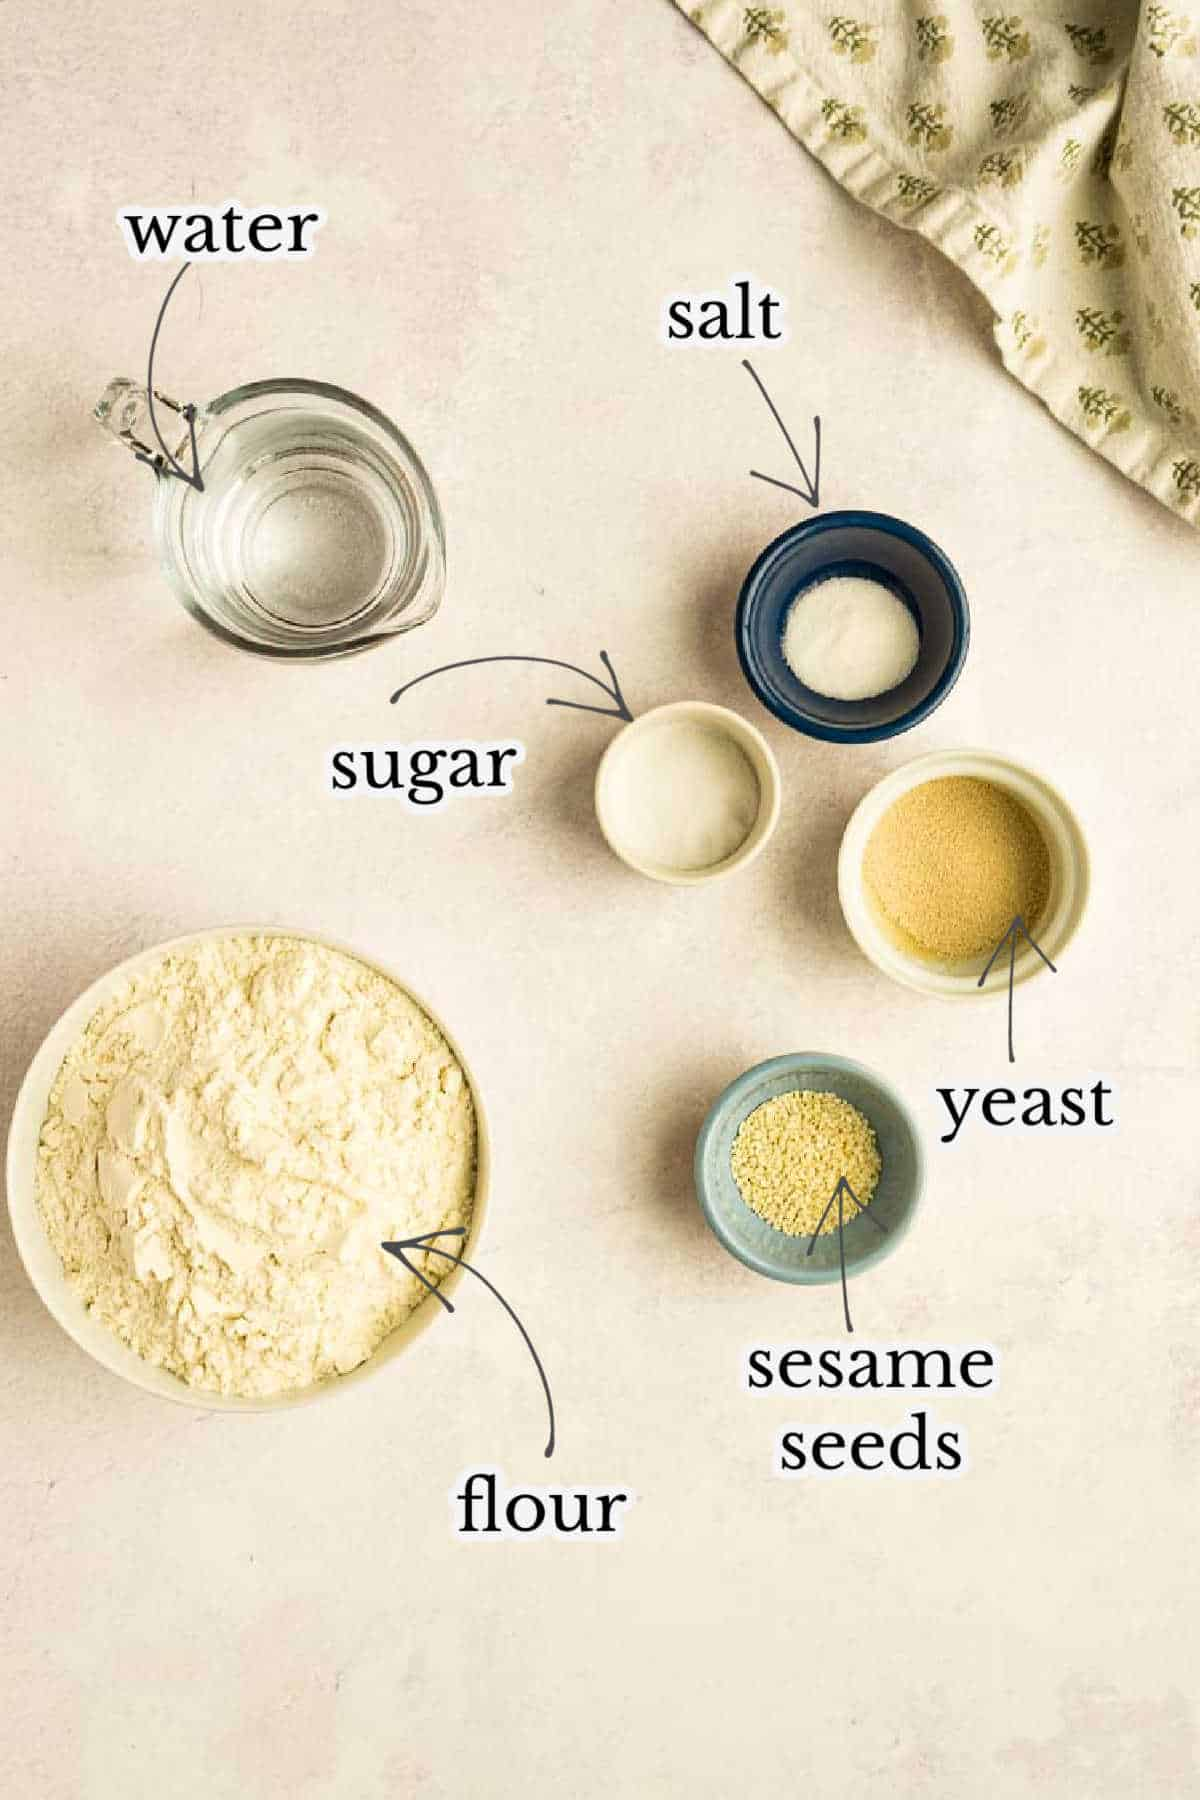 water, salt, sugar, flour, olive oil and yeast